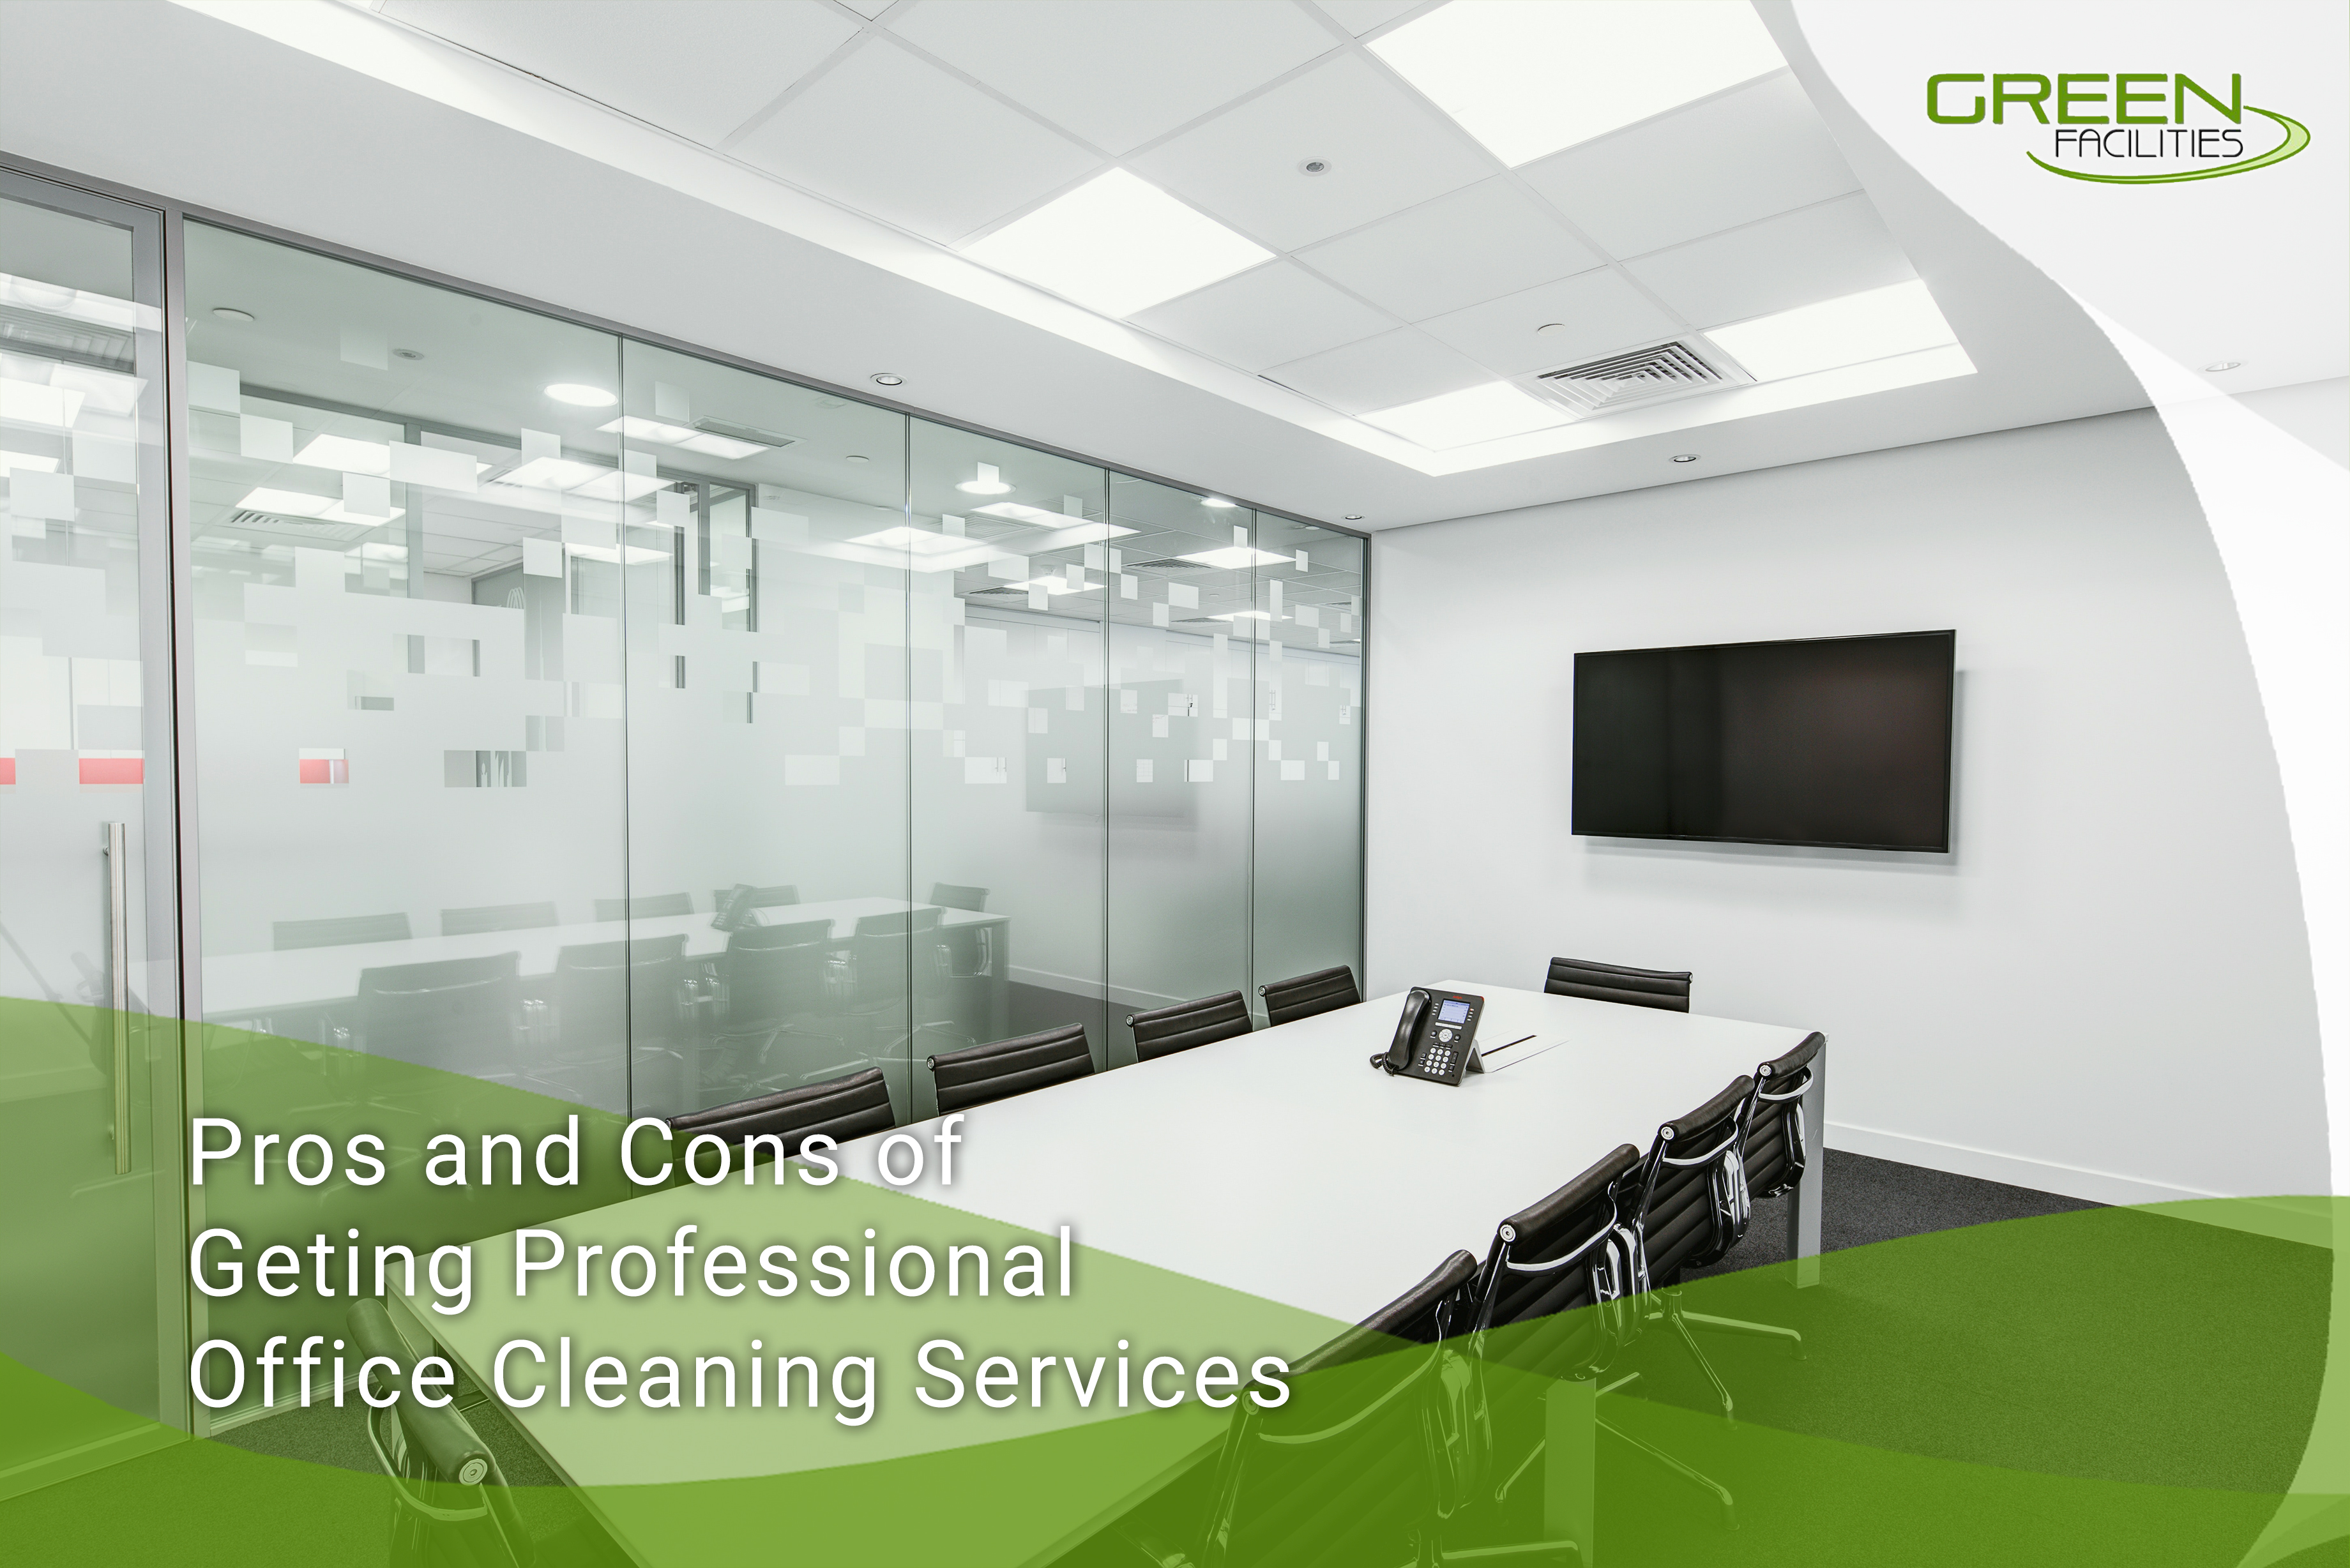 Office Cleaning Service The Pros and Cons of Getting A Professional Cleaner